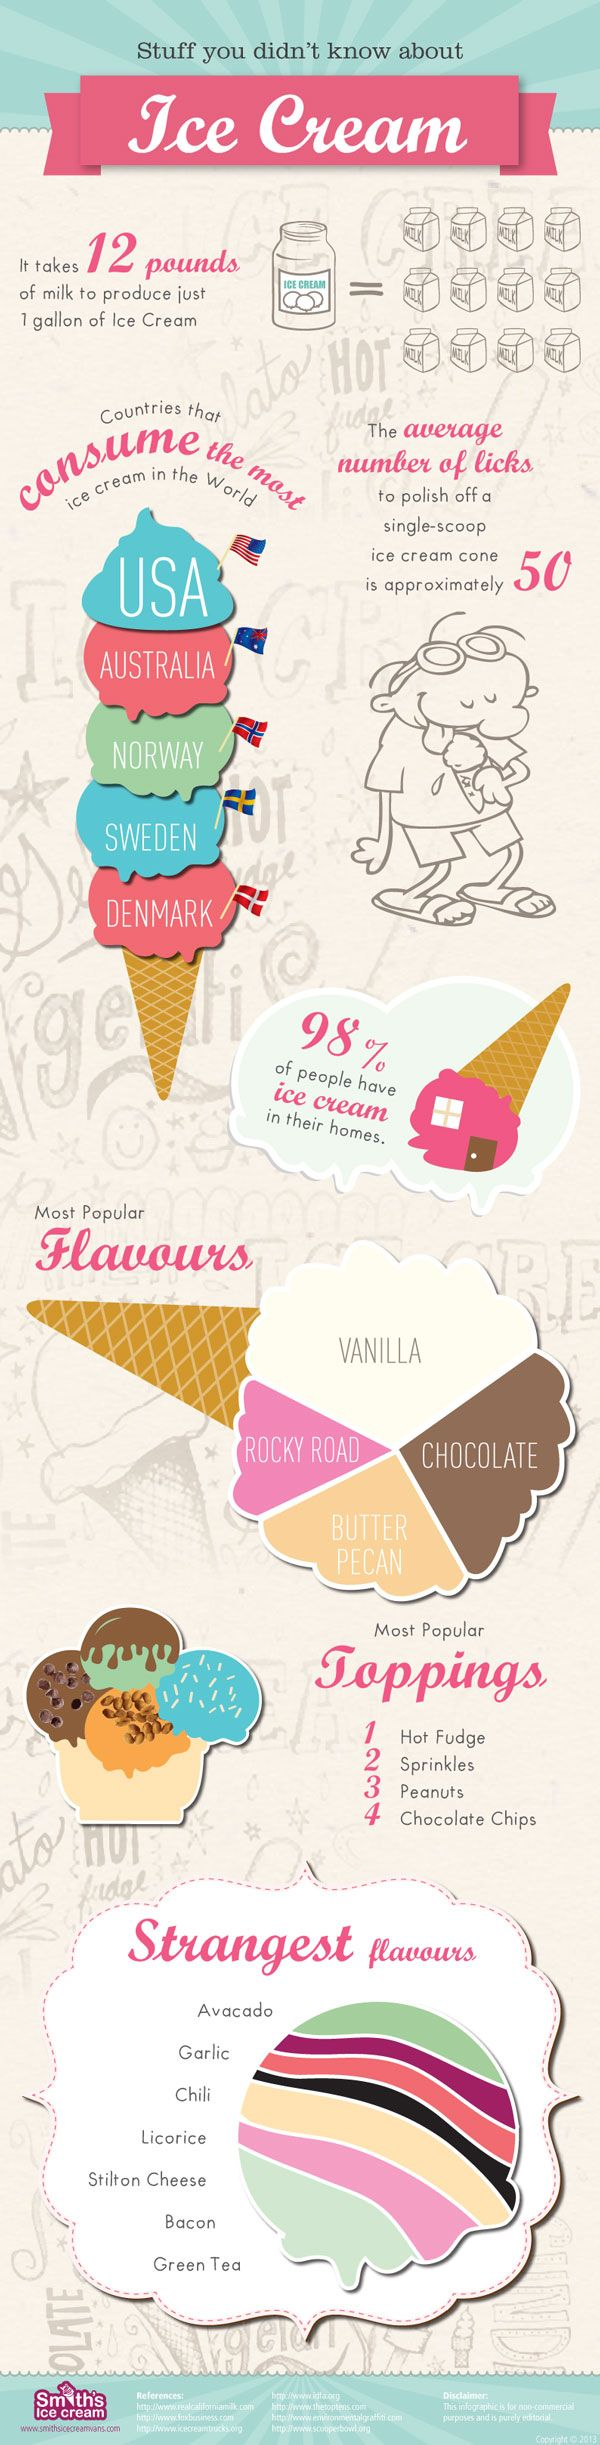 Did you know it takes 12 pounds of milk to make one gallon of ice cream? Discover more fun facts about every's favorite icy treat. >> https://www.finedininglovers.com/blog/food-drinks/ice-cream-facts-infographic/